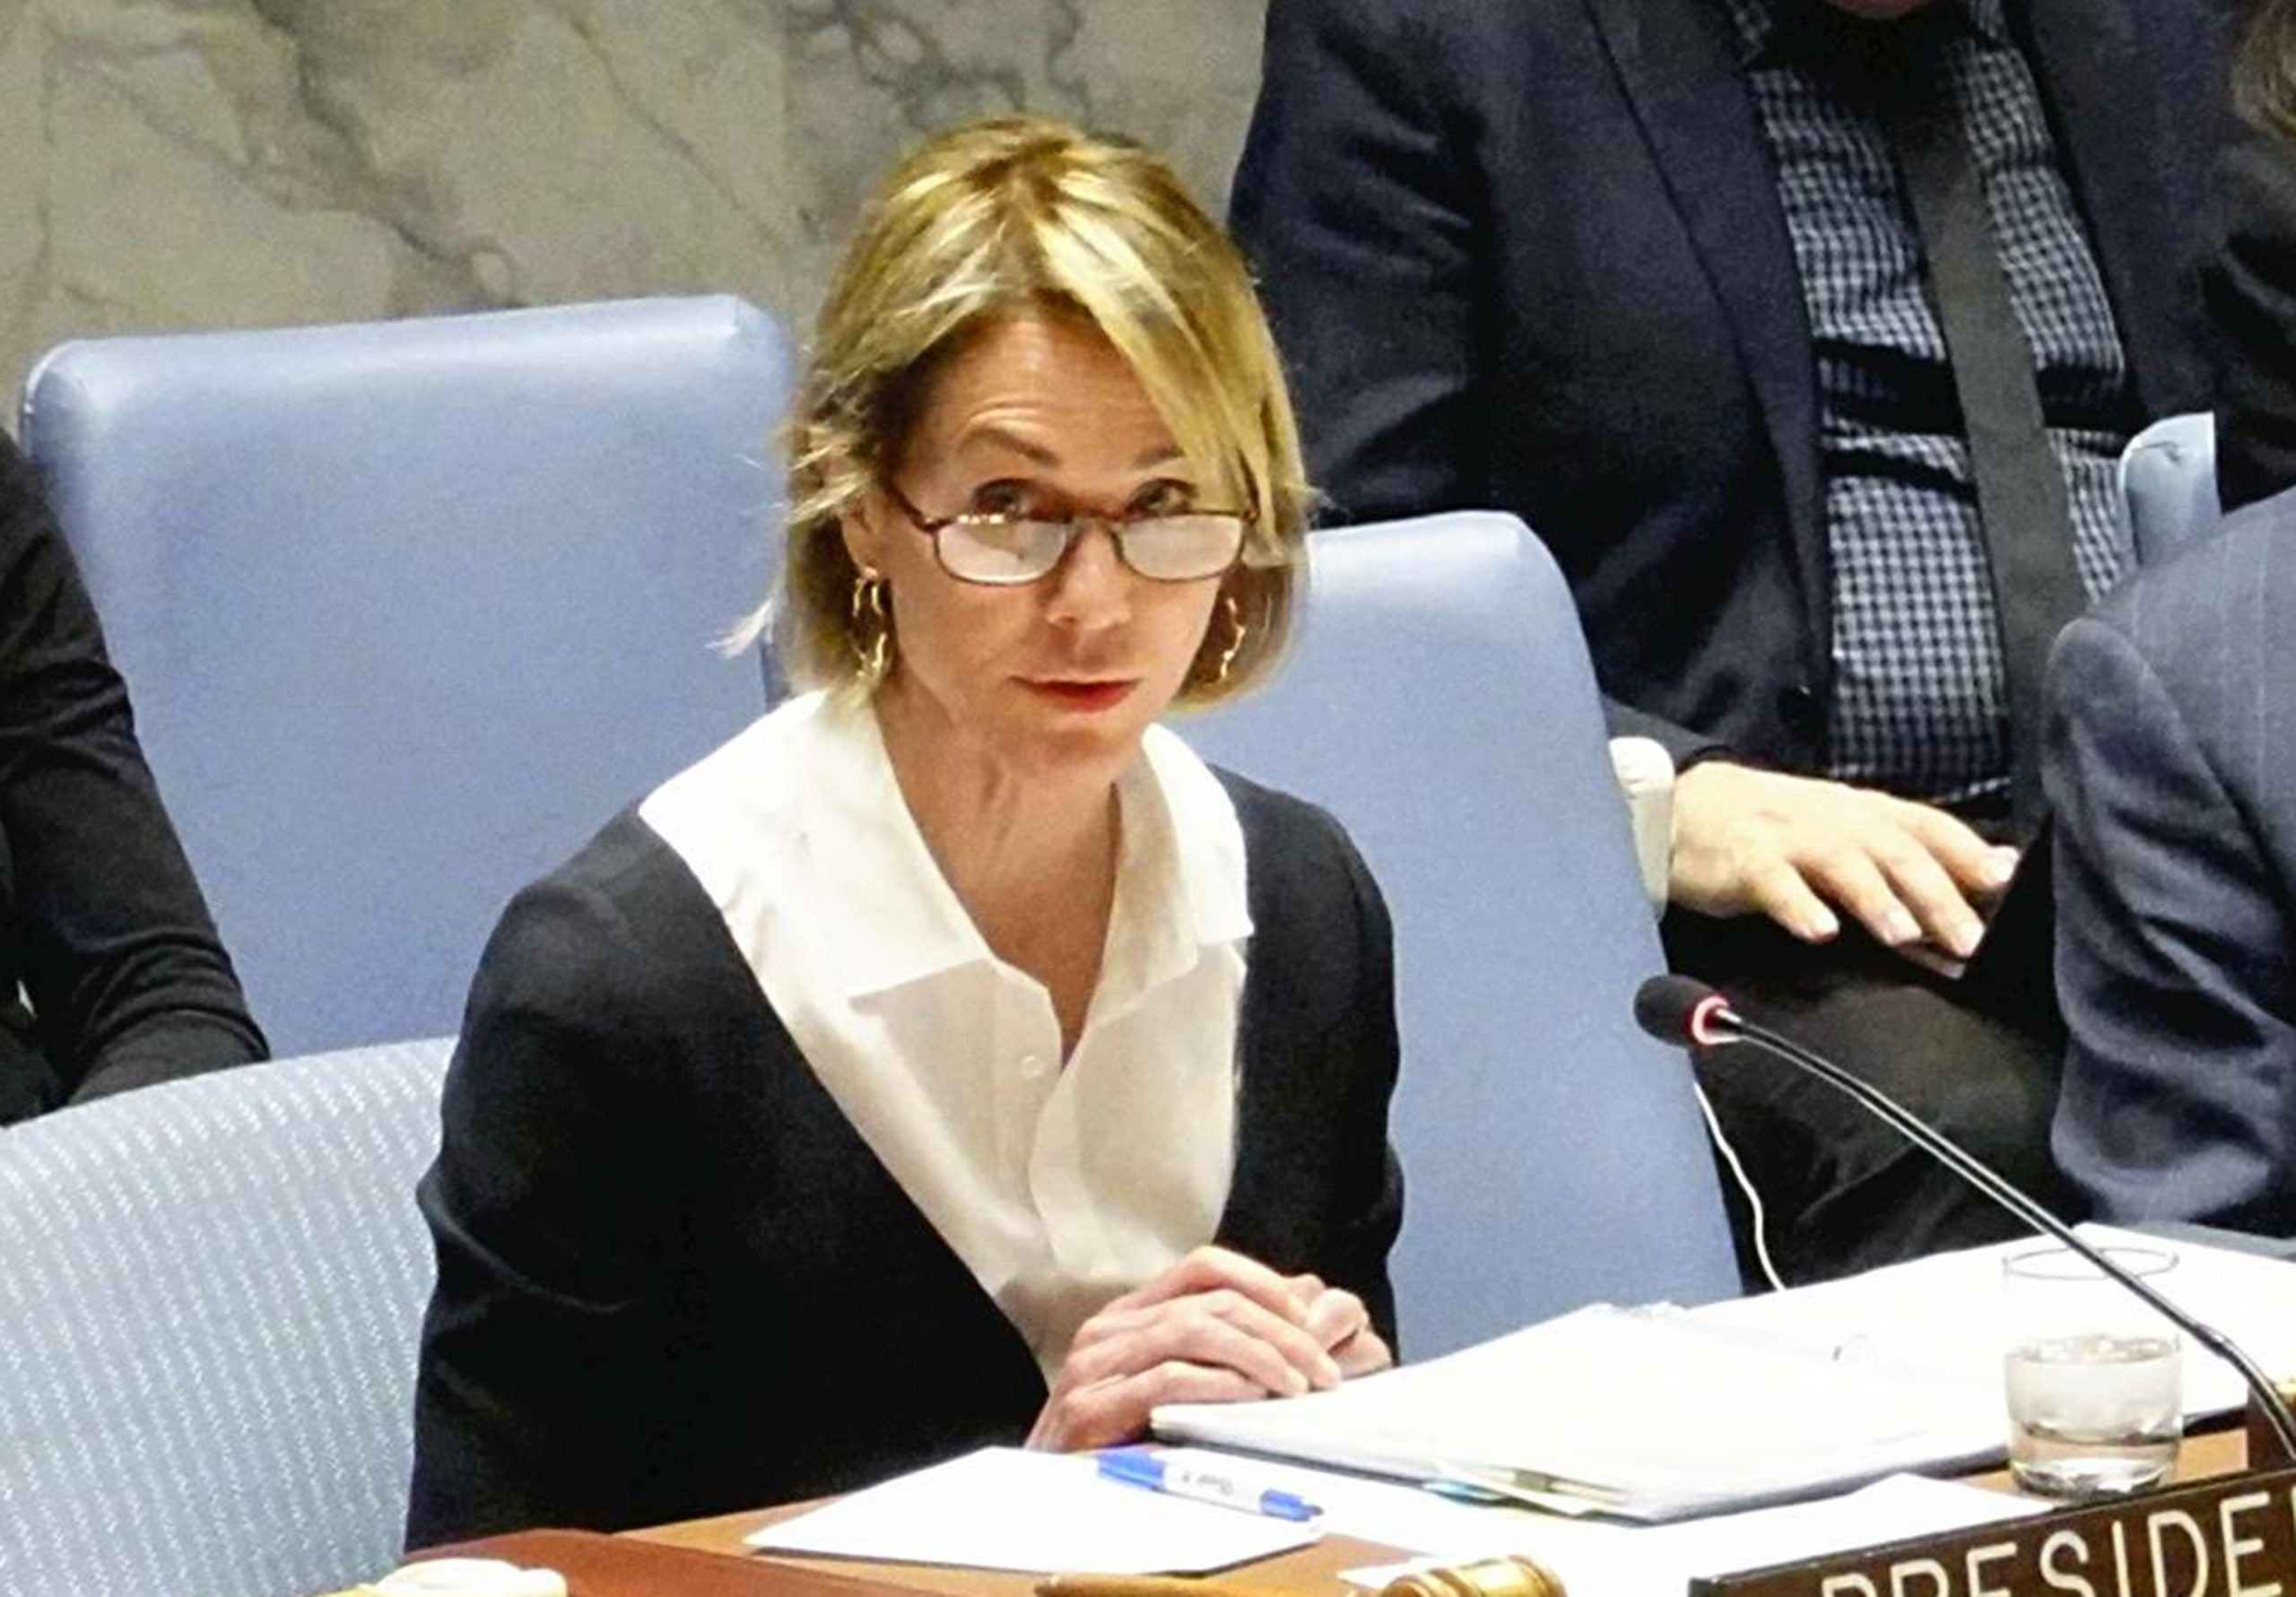 2019-12-11T071758Z_1561857028_MT1YOMIURAR191212UN001_RTRMADP_3_U-S-AMBASSADOR-TO-THE-UNITED-NATIONS-KELLY-CRAFT-SPEAKS-DURING-scaled